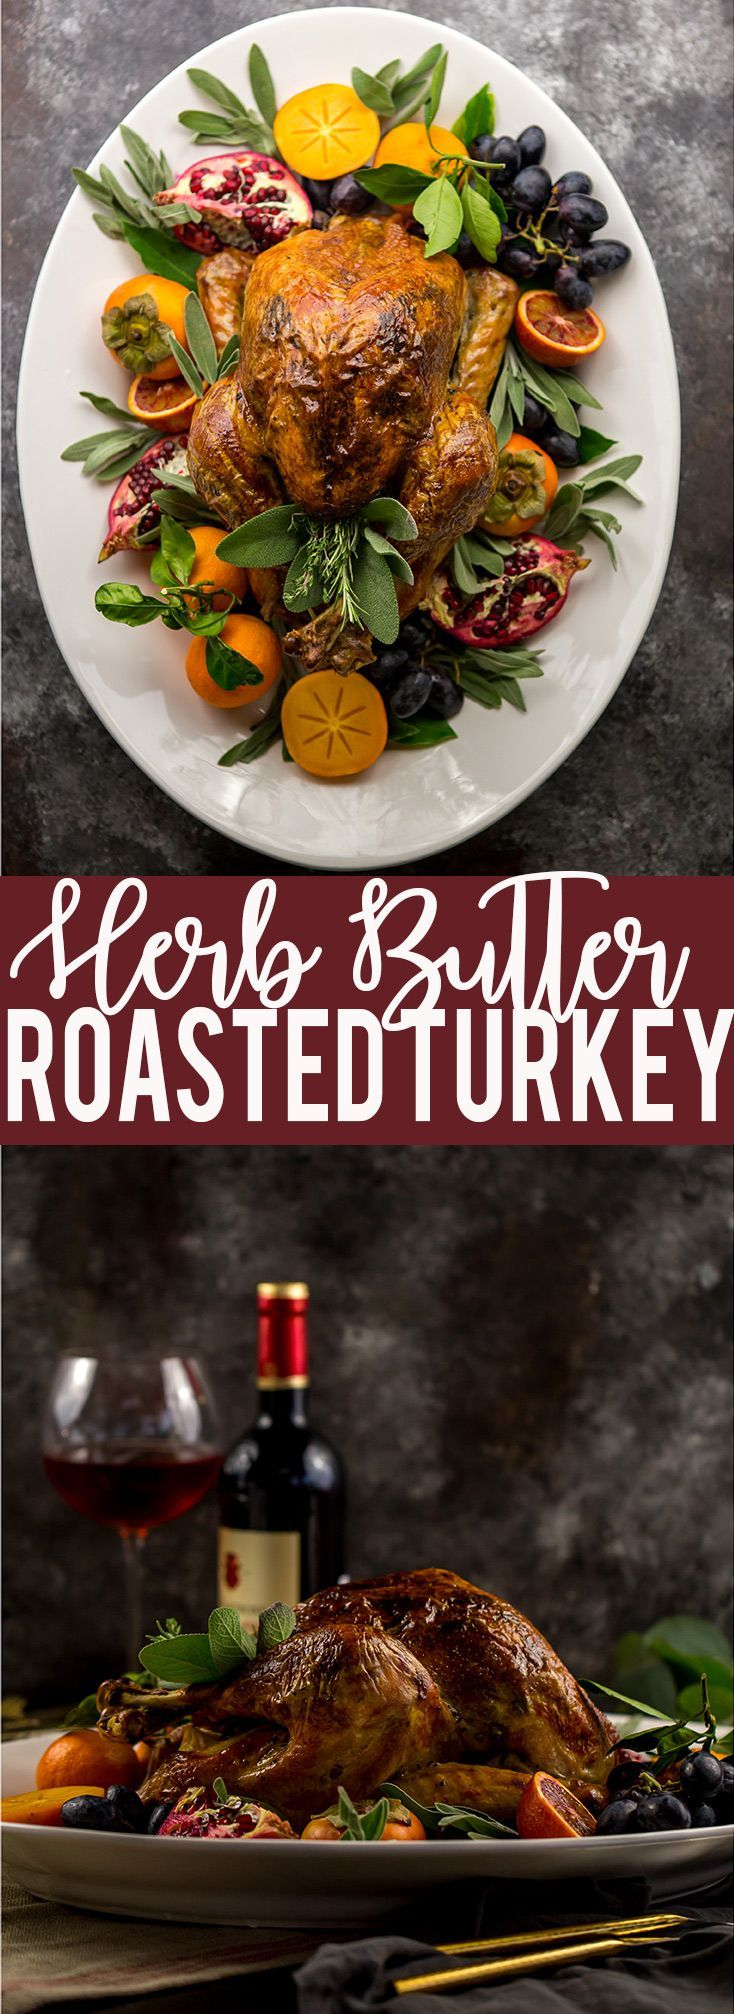 Easy Herb Butter Roasted Turkey | Thanksgiving Turkey Recipe | Turkey Seasoning | Oven Roasted Turkey | Low Carb Thanksgiving Turkey Recipe | Juicy Turkey Recipe | Turkey recipe using cheesecloth #turkey #thanksgiving #Thanksgivingturkey #ThanksgivingRecipes